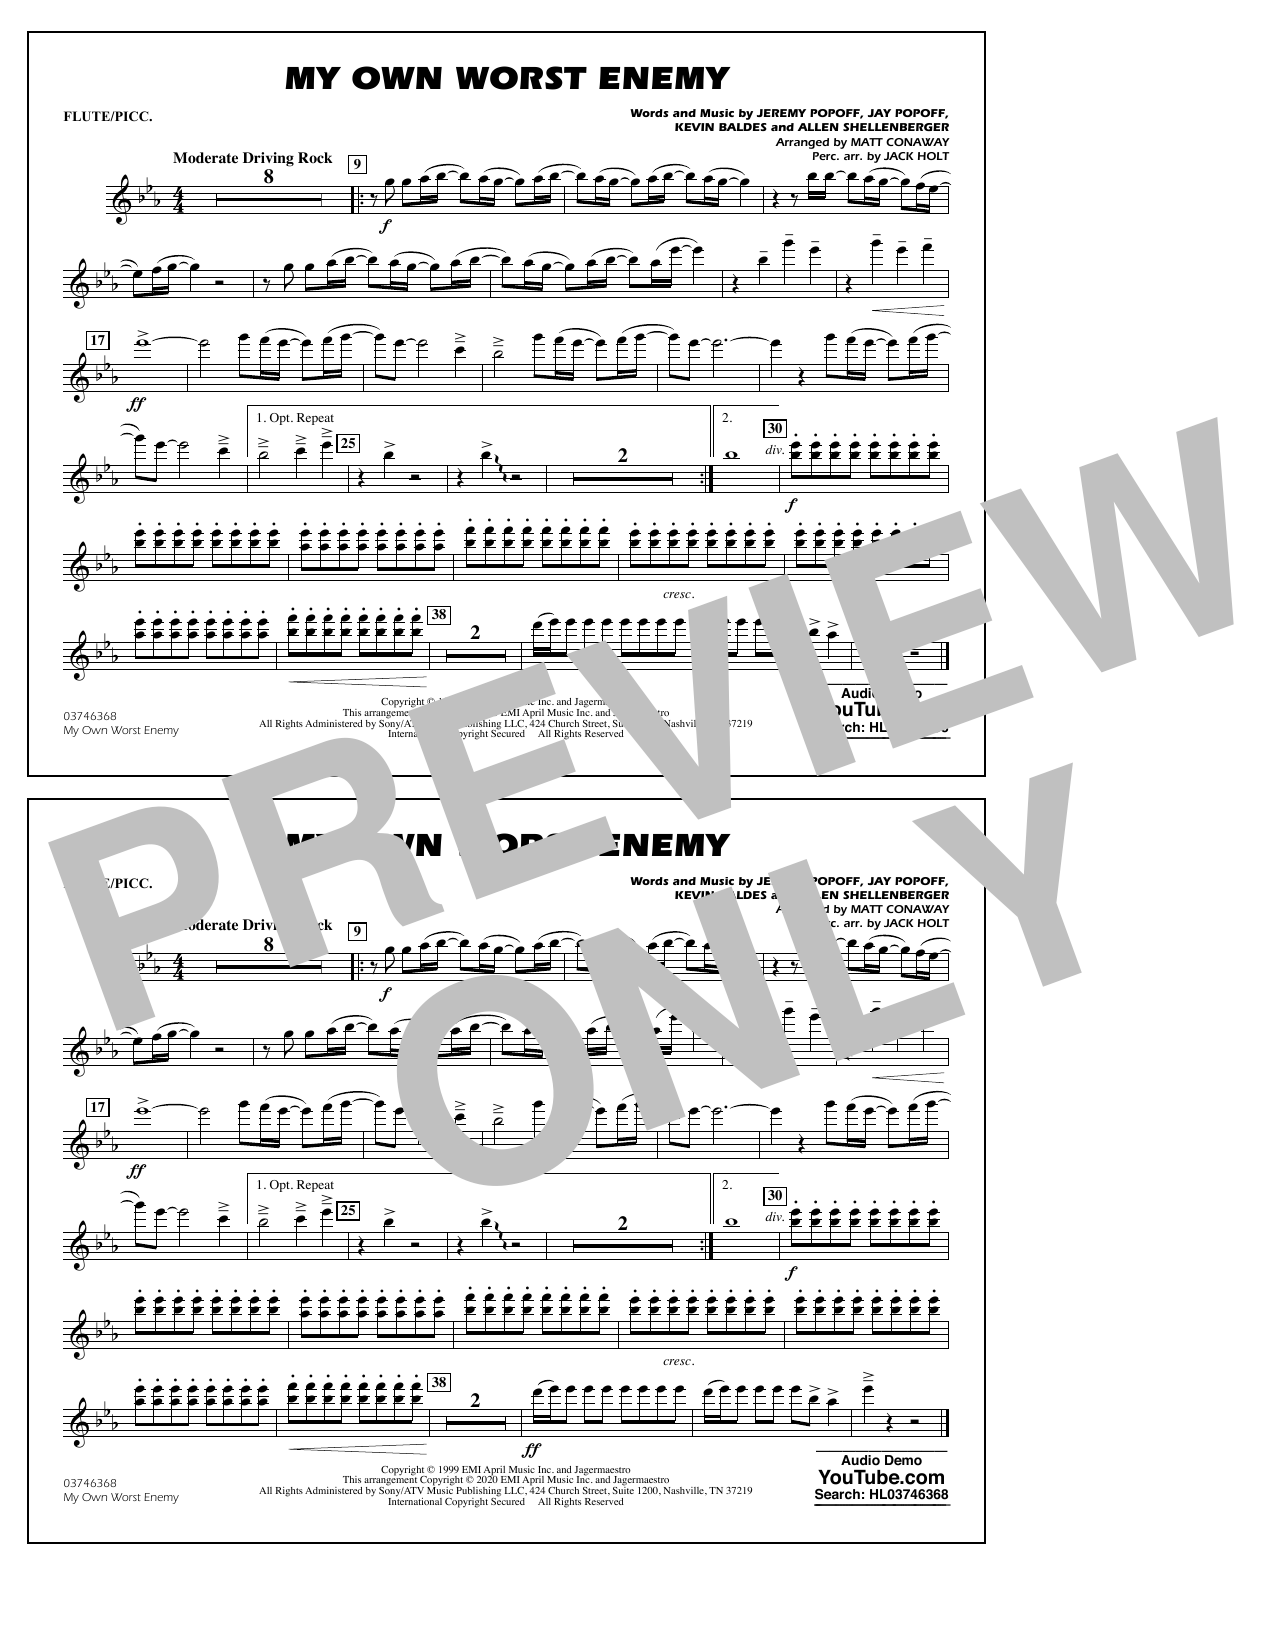 My Own Worst Enemy (arr. Matt Conaway) - Flute/Piccolo Sheet Music